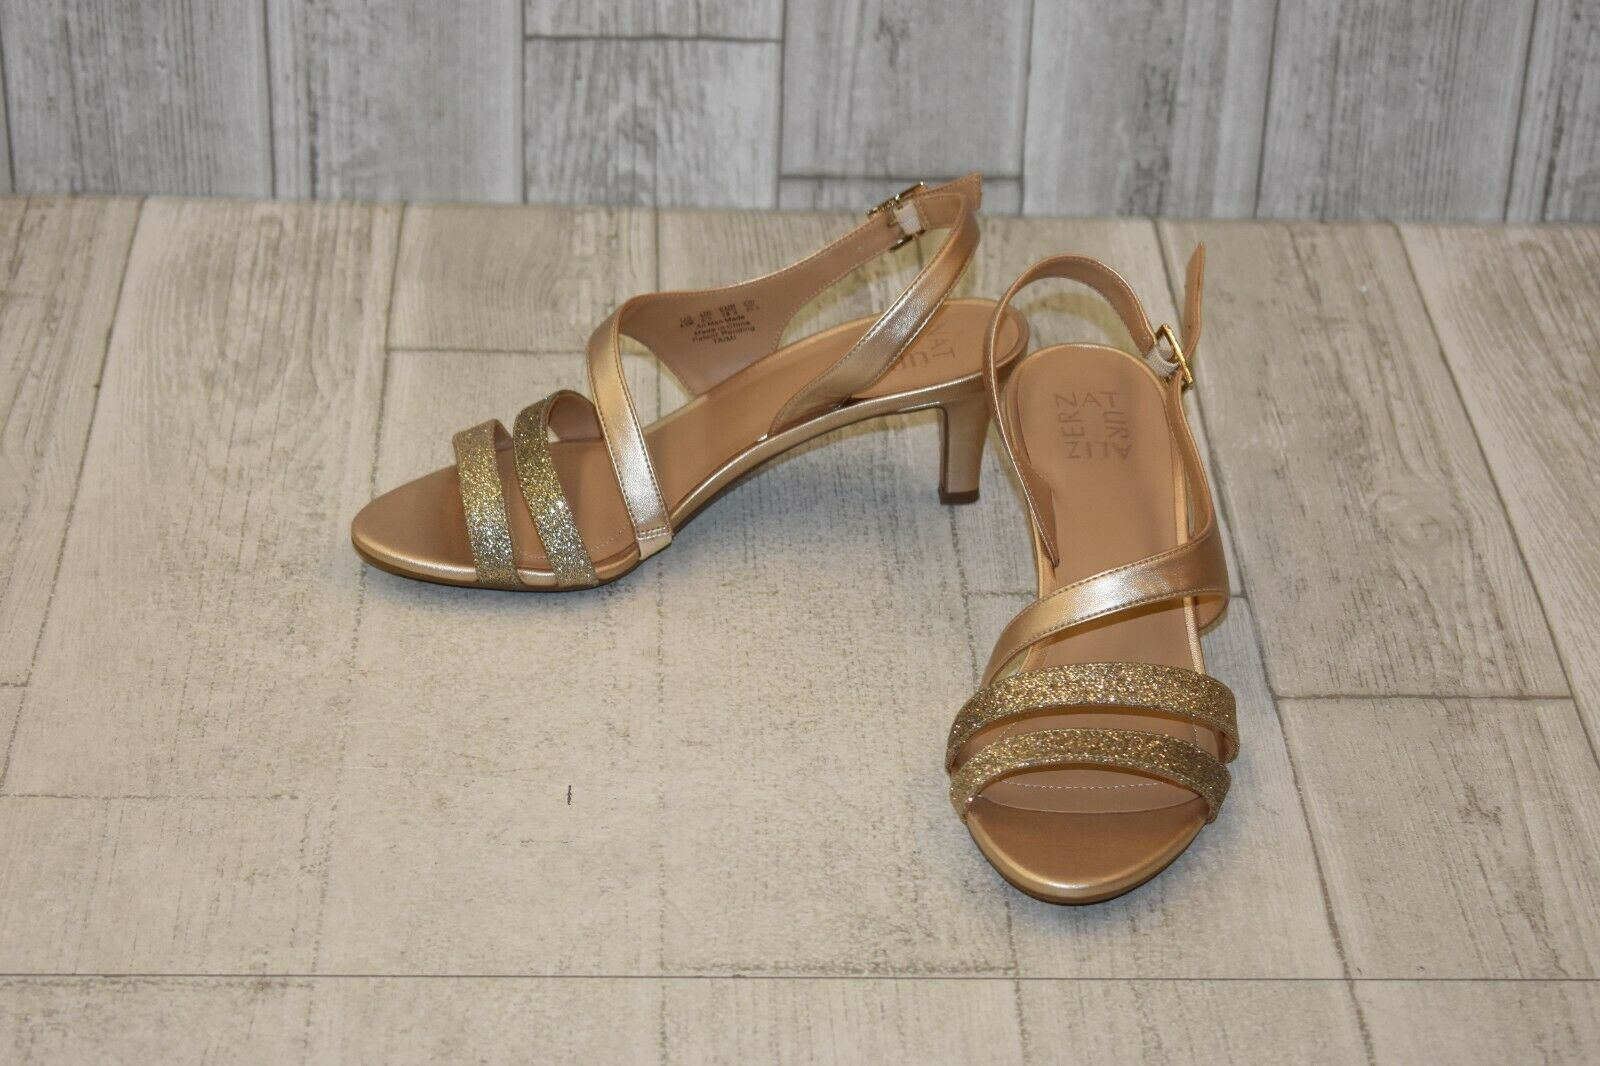 Naturalizer Taimi Heels - Women's Size 8.5 M - gold Pearl NEW